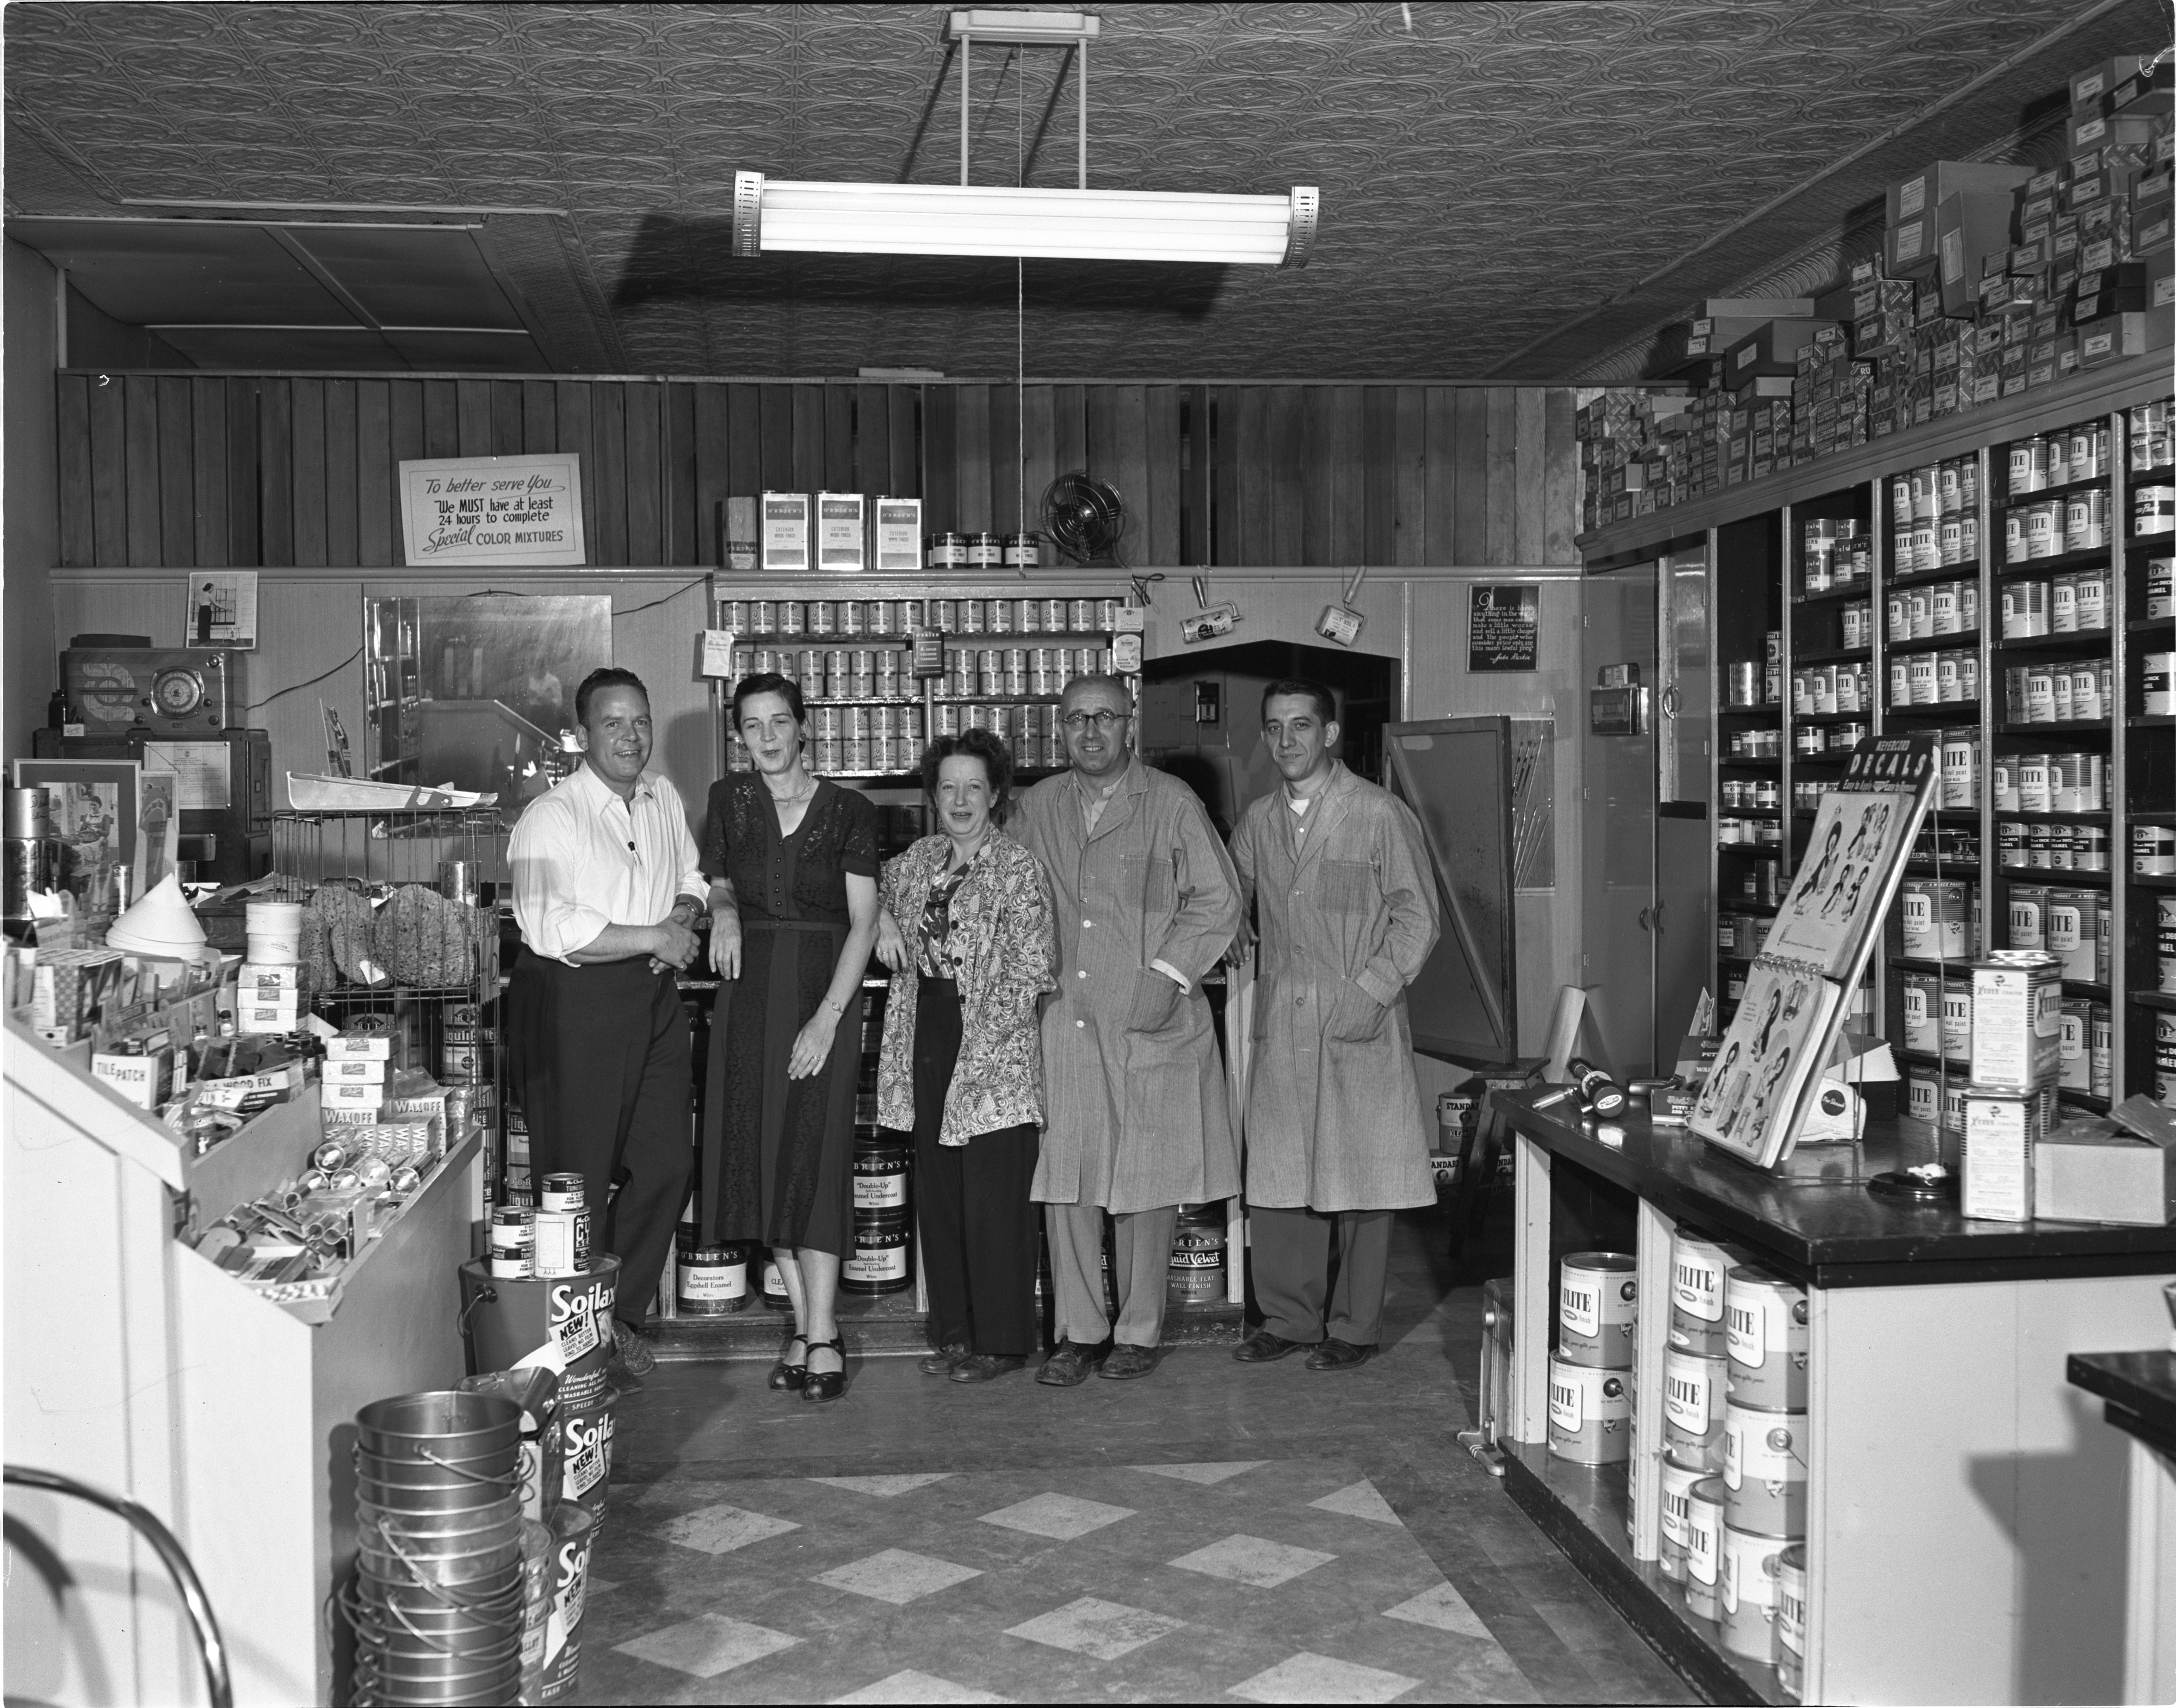 The Paint Pot - Owner E. C. Rowe & Employees, September 1951 image